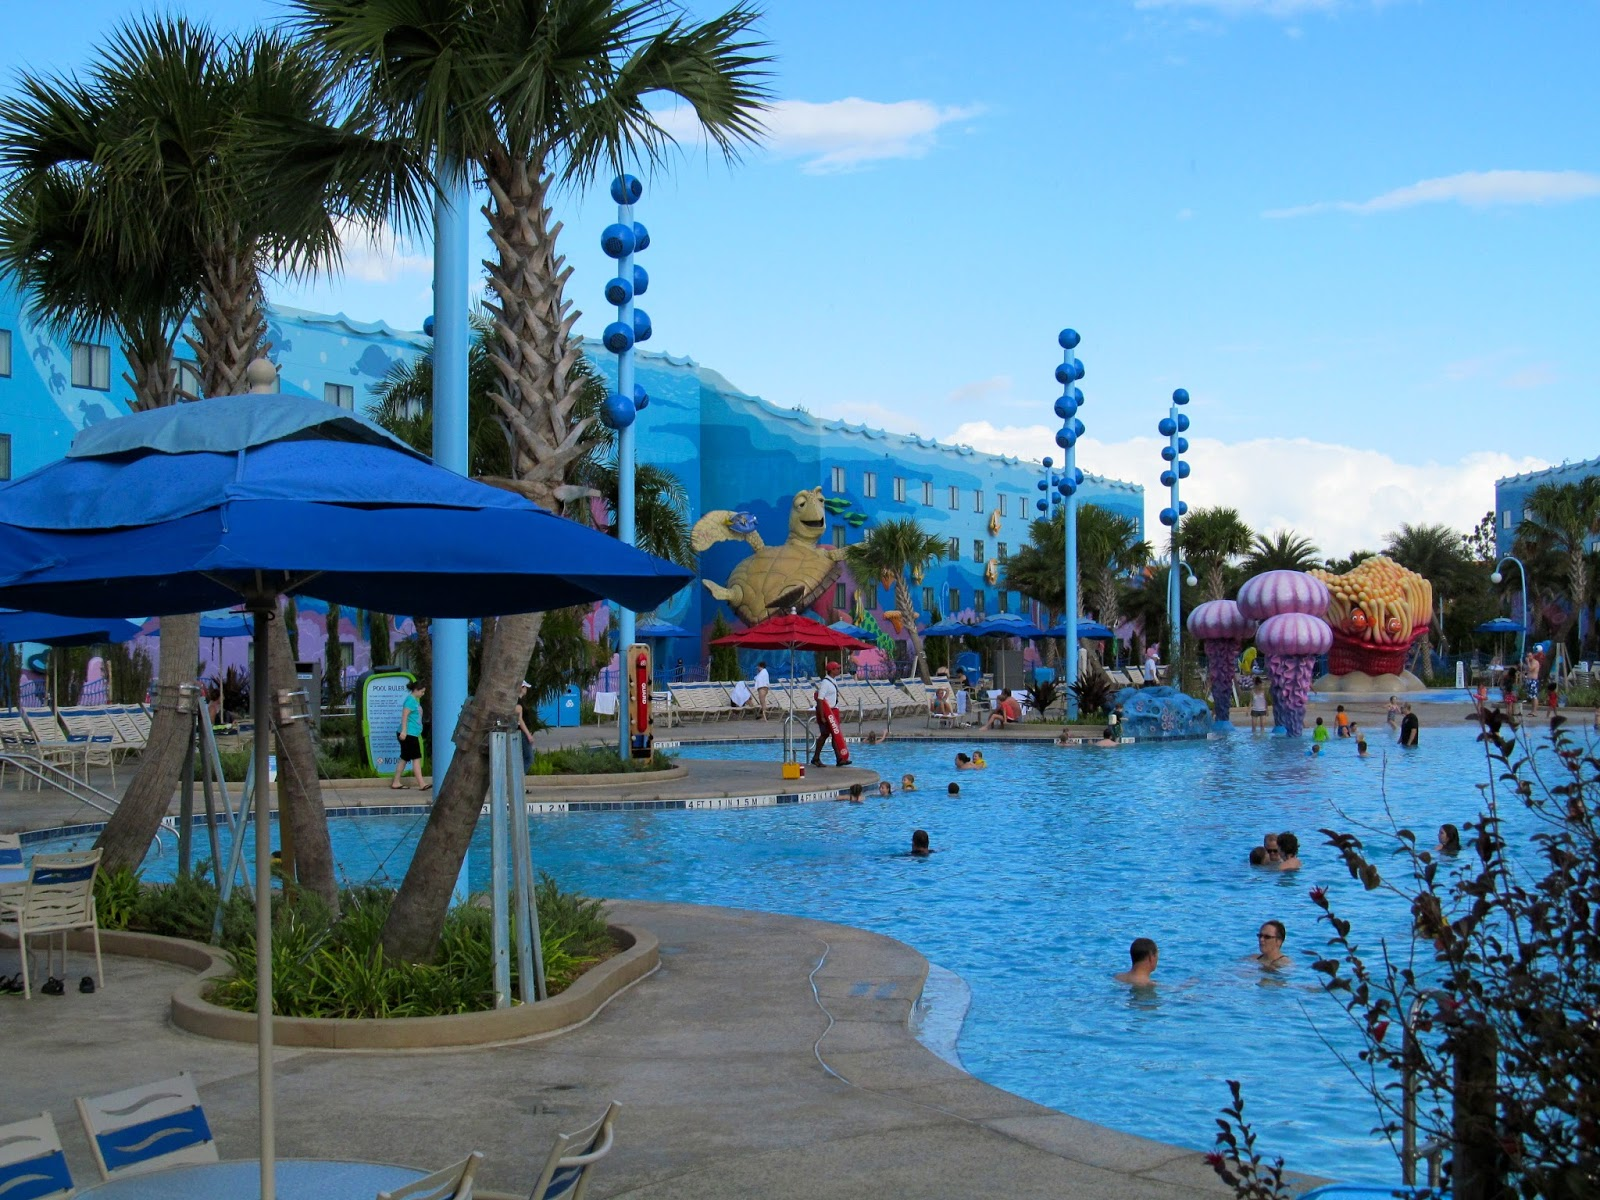 Nemo Area at Disney's Art of Animation Resort